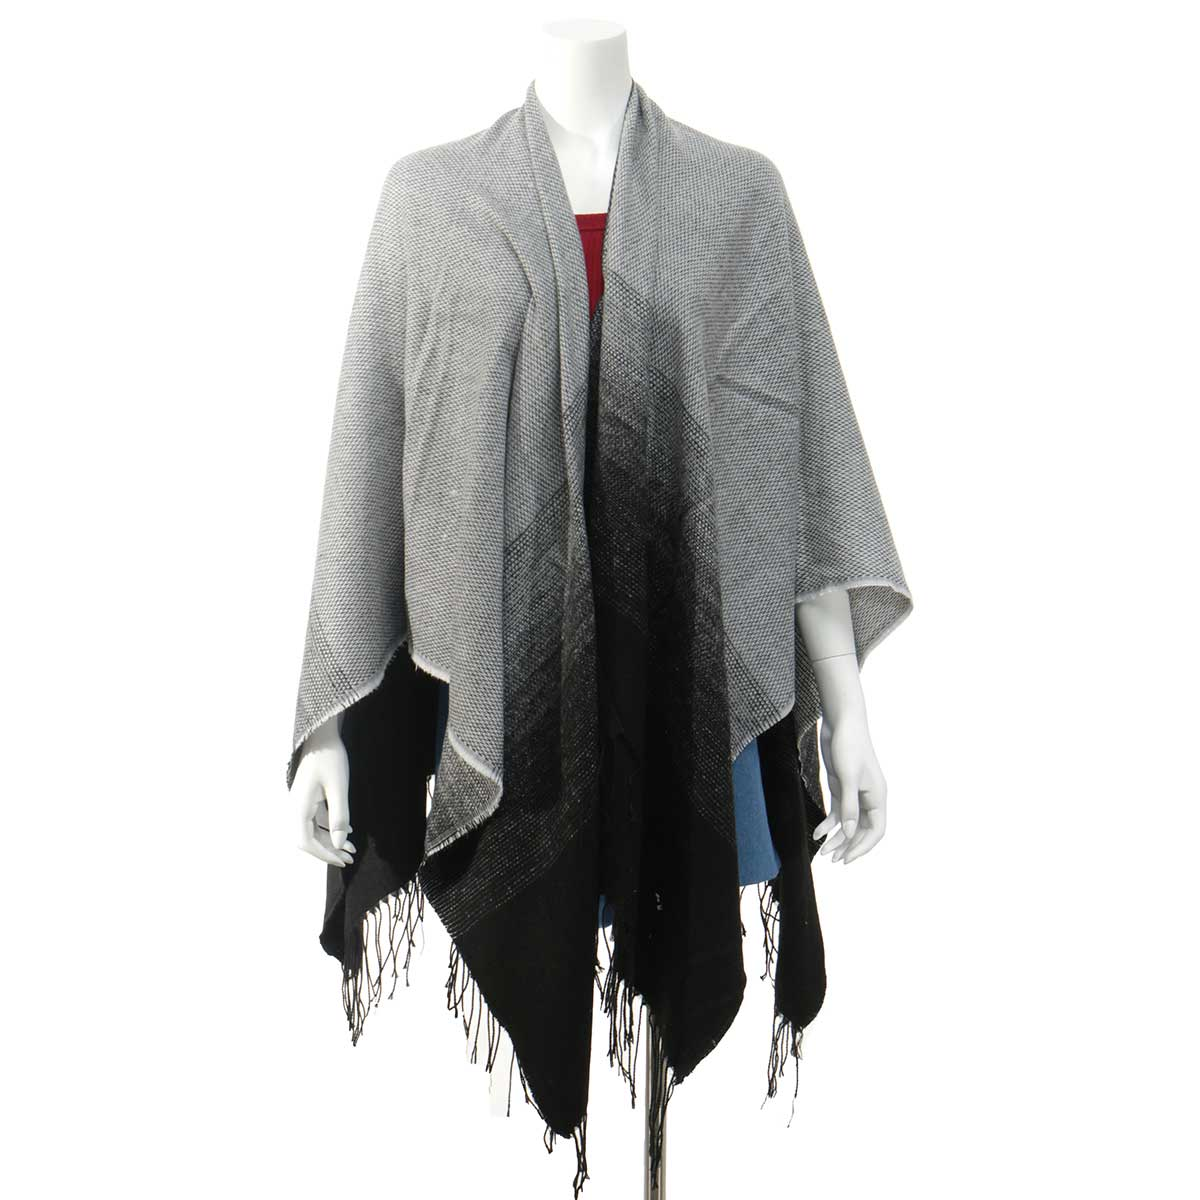 Grey/Black Wrap with Fringe 50sp